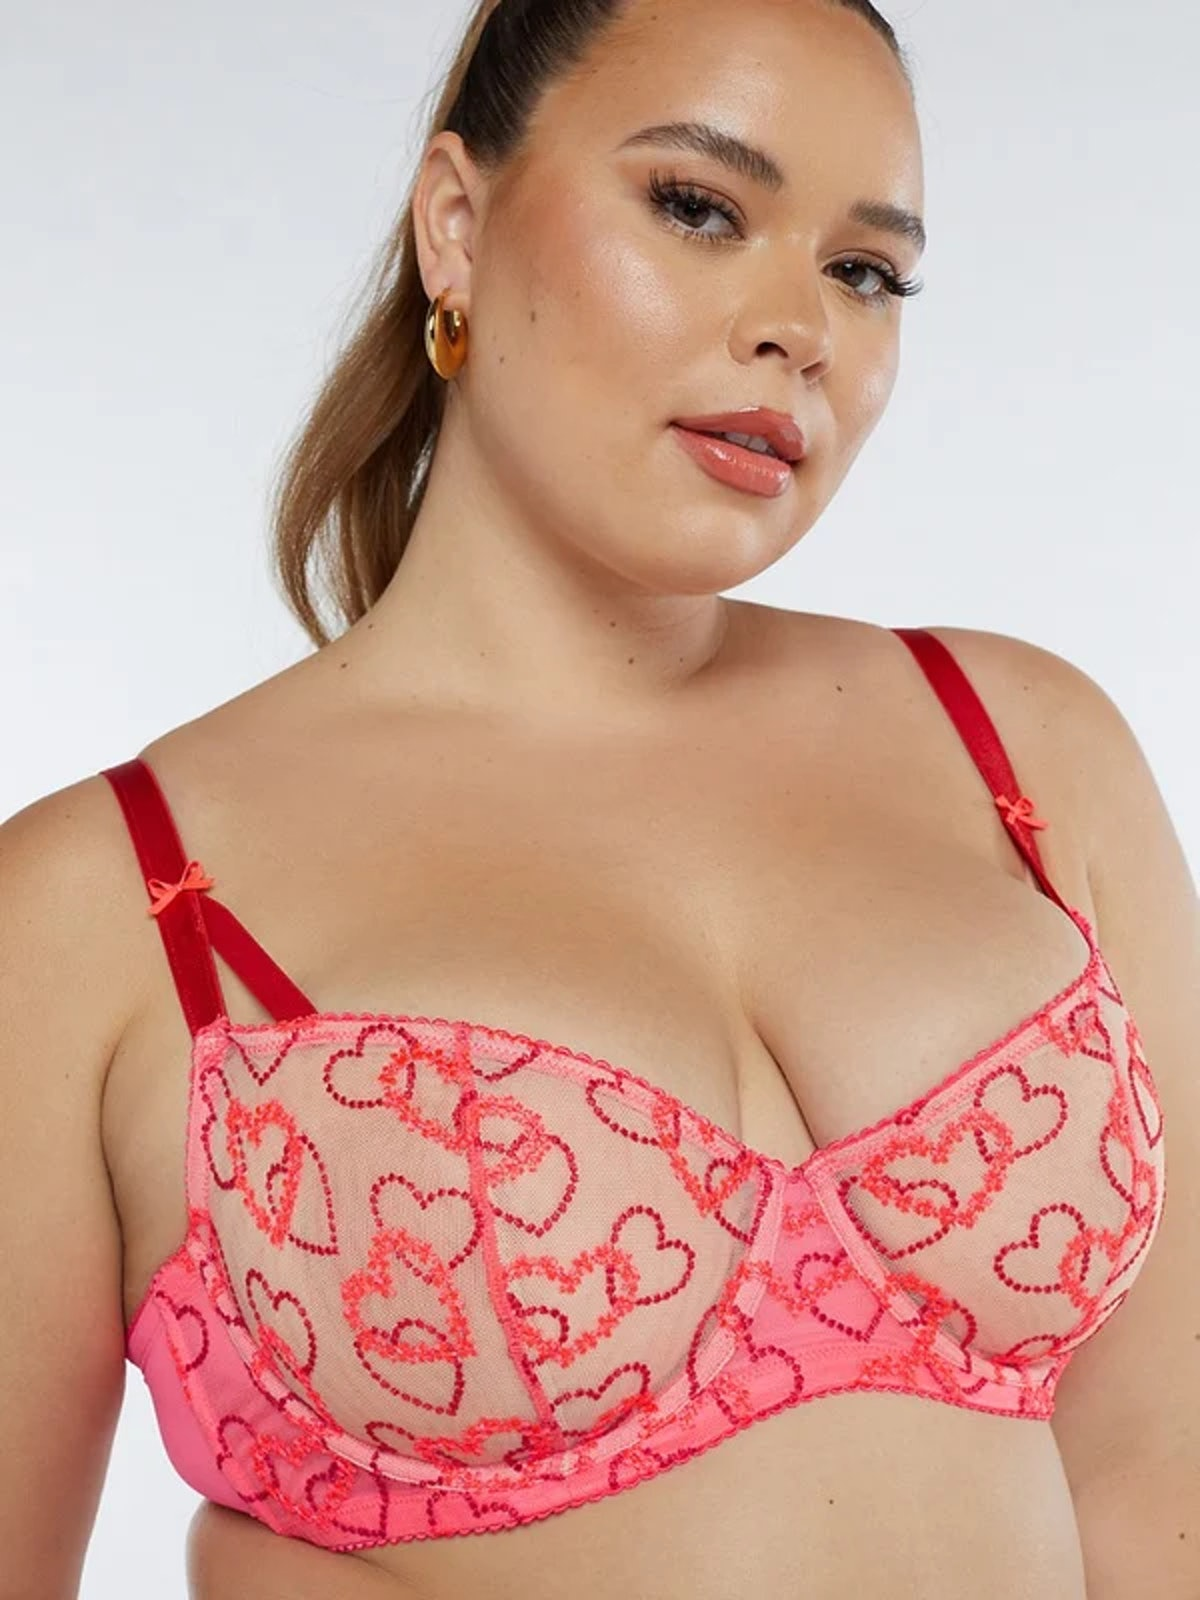 Linking Hearts Embroidery Unlined Lace Balconette Bra